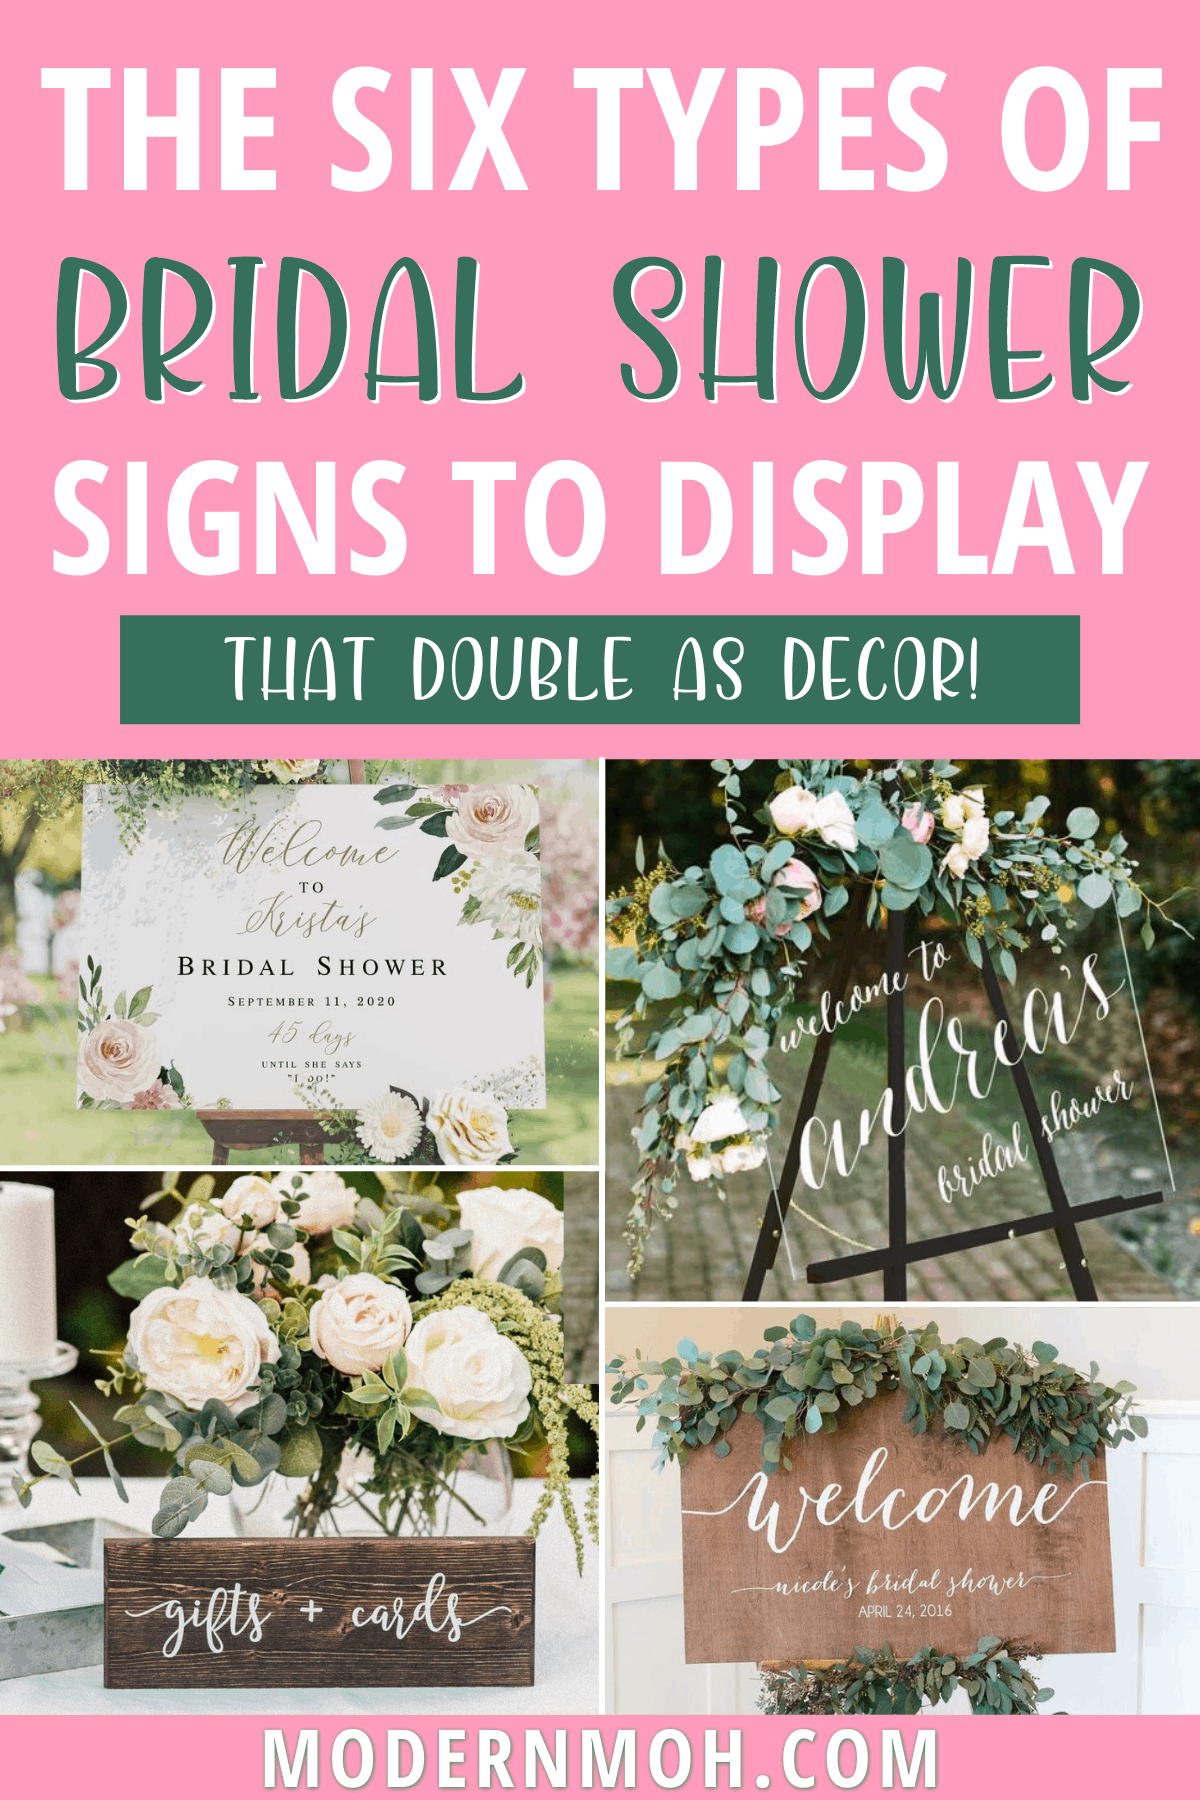 24 Bridal Shower Signs That Double as Decor